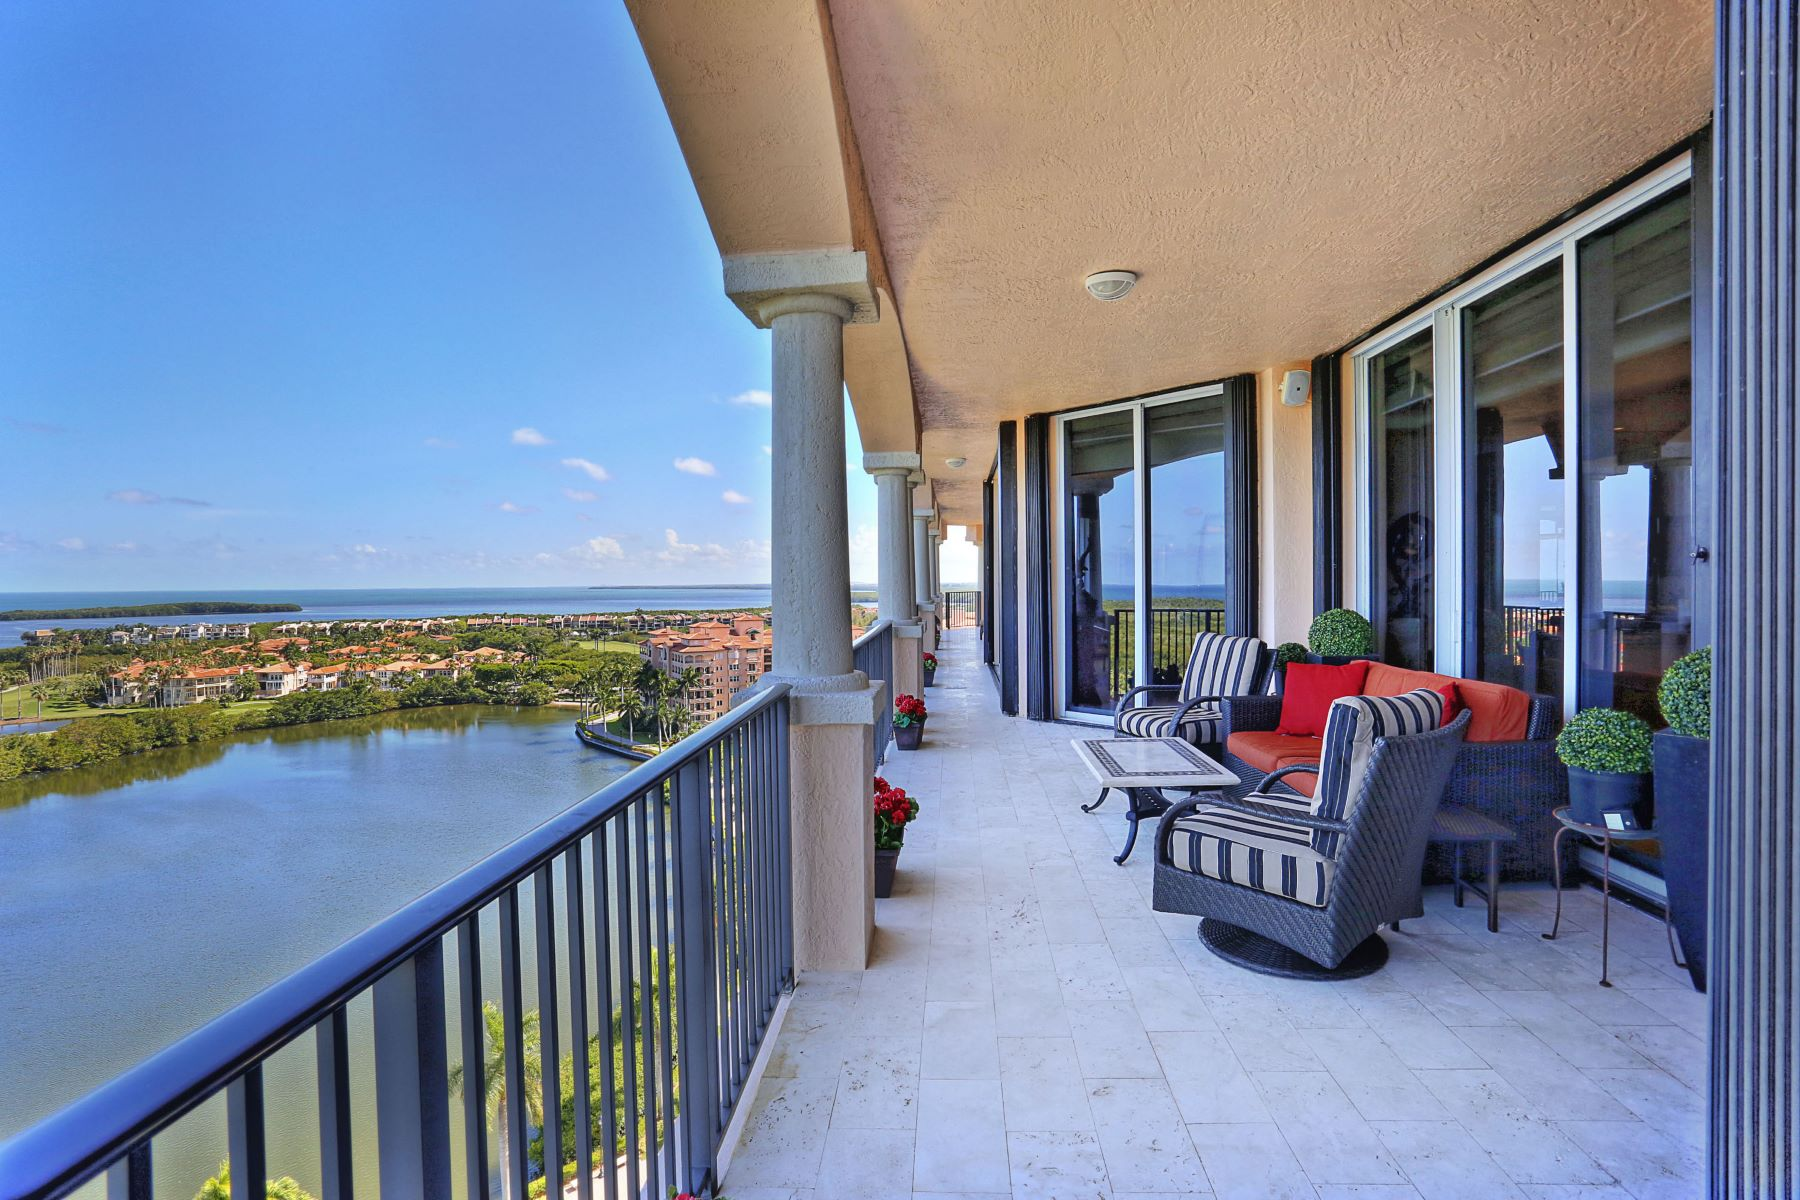 Condominium for Sale at 13627 Deering Bay Dr #1402 13627Deering Bay Dr 1402 Coral Gables, Florida, 33158 United States